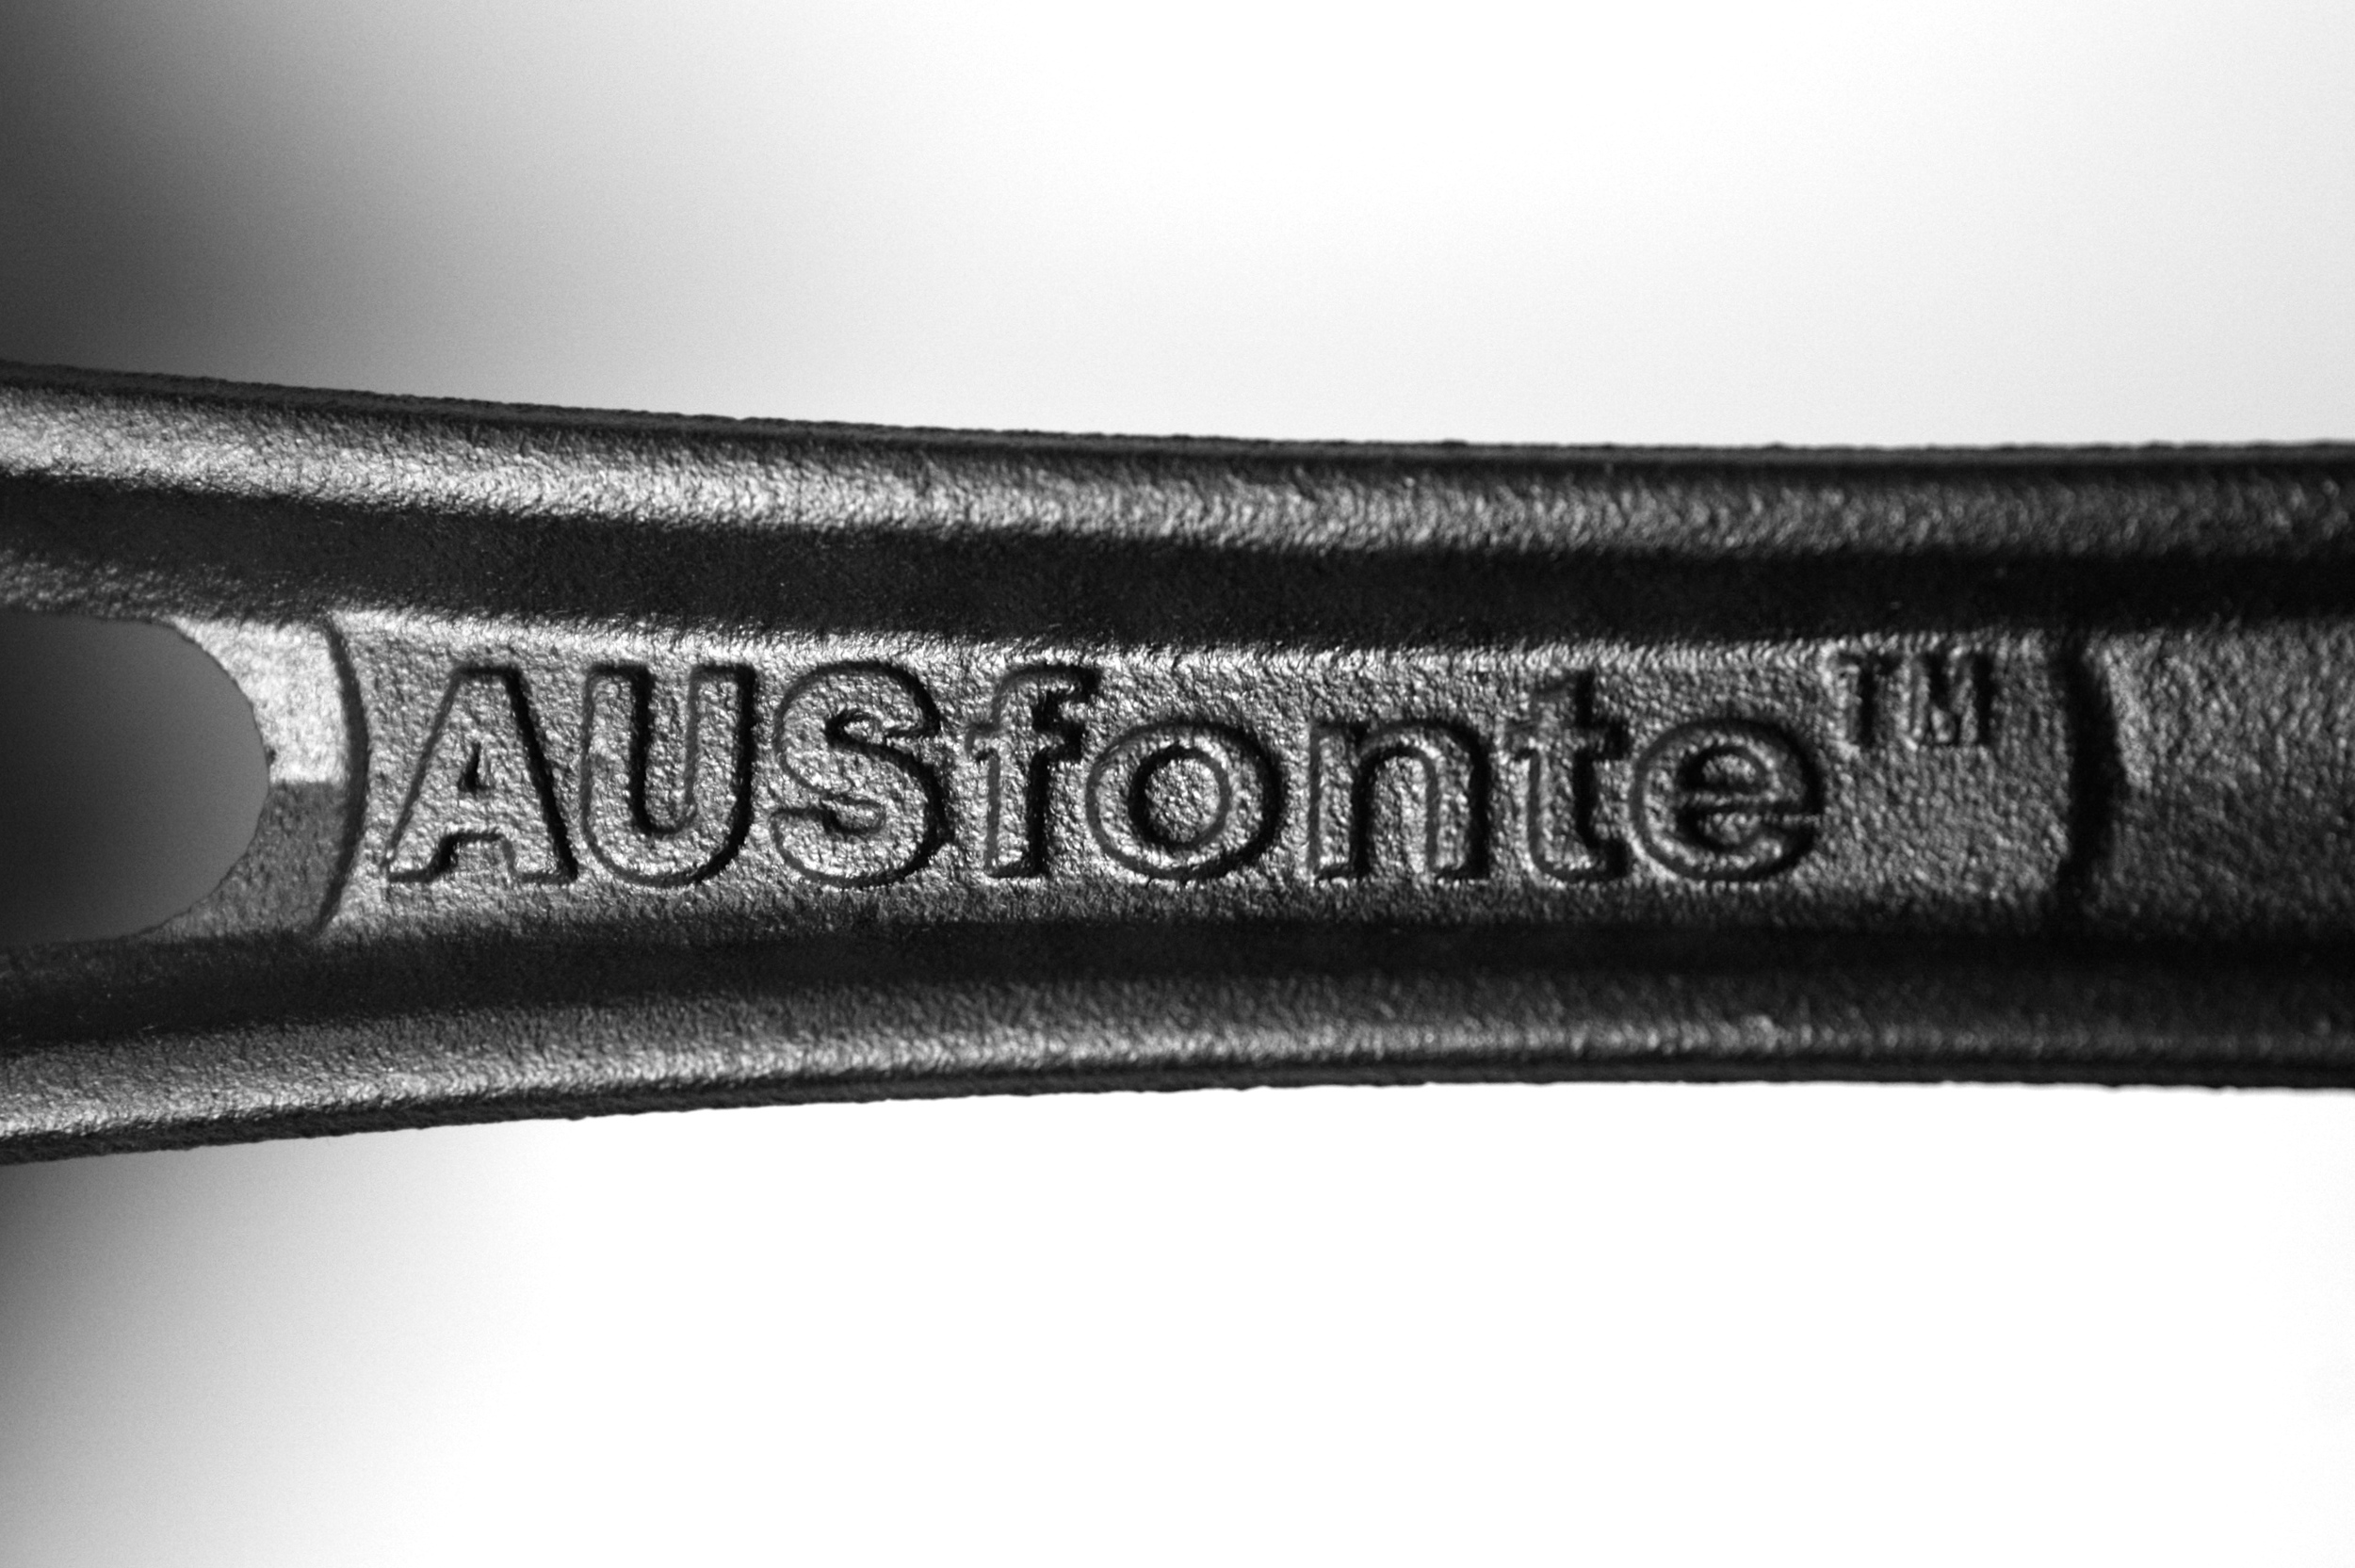 SOLIDTEKNICS AUSfonte cast iron Love Handle logo 1-1-15.JPG